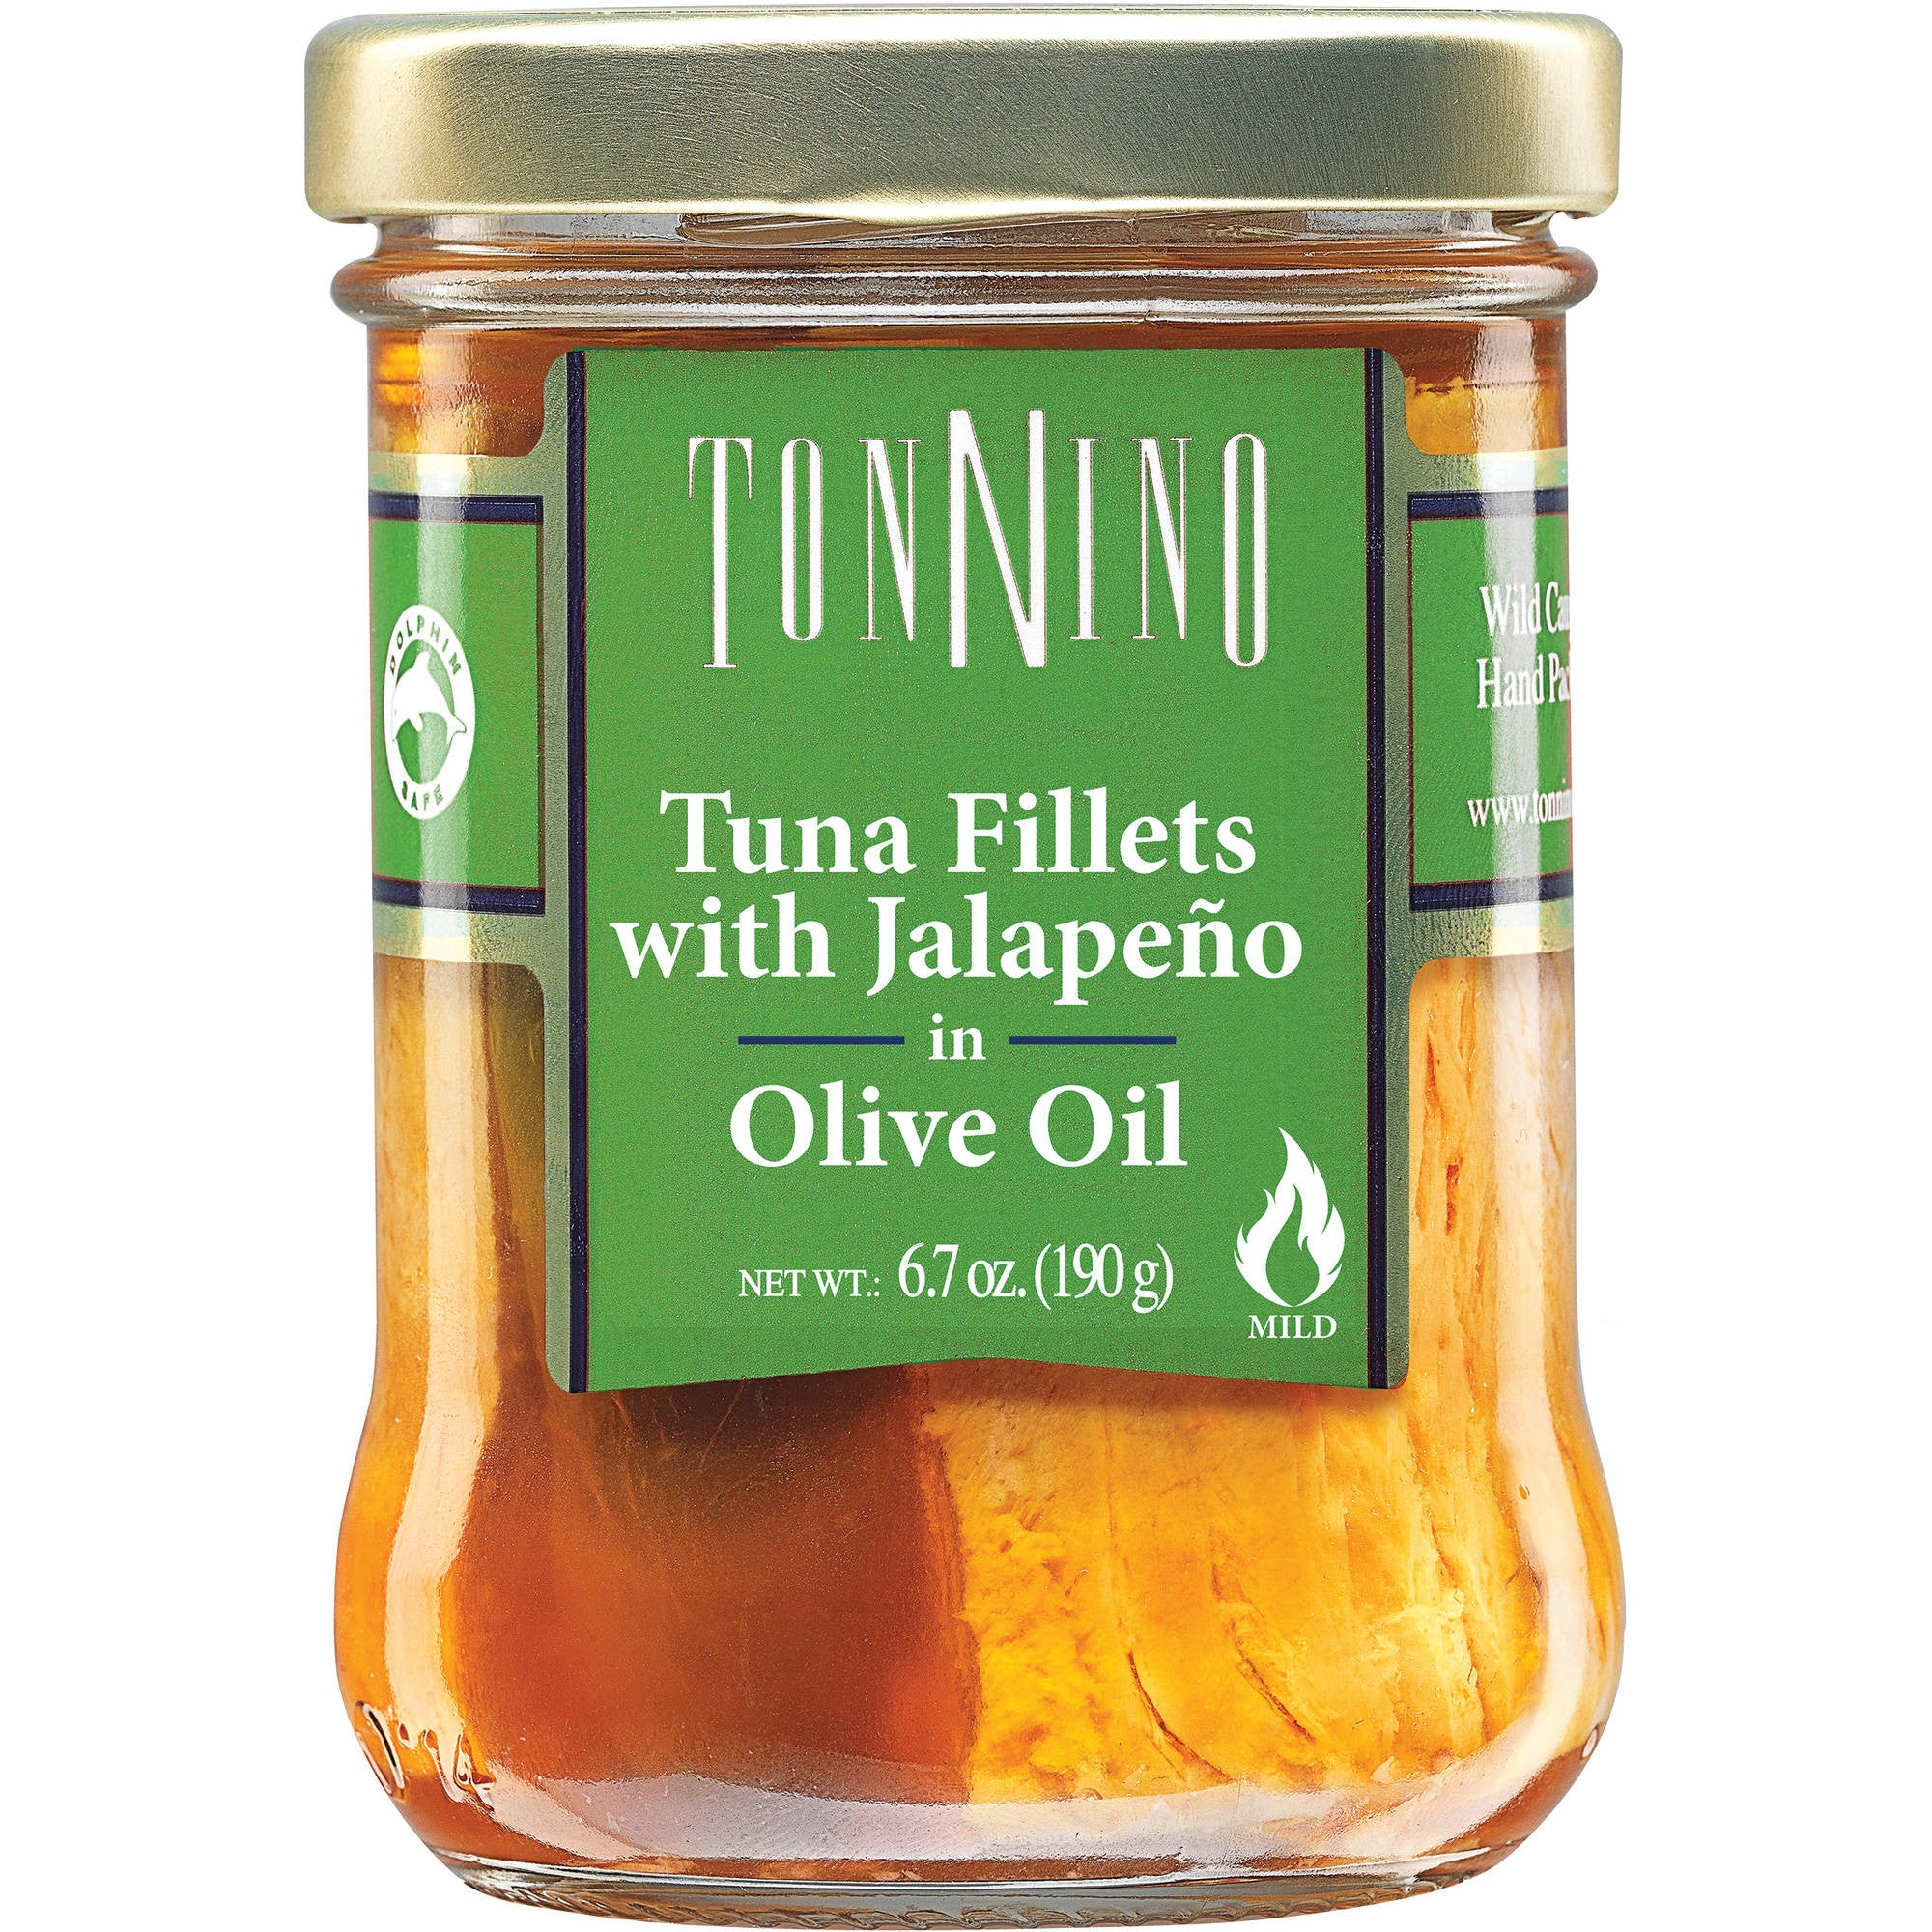 Tonnino Tuna Fillet with Jalapeno in Olive Oil, 6.7 OZ (Pack of 6)